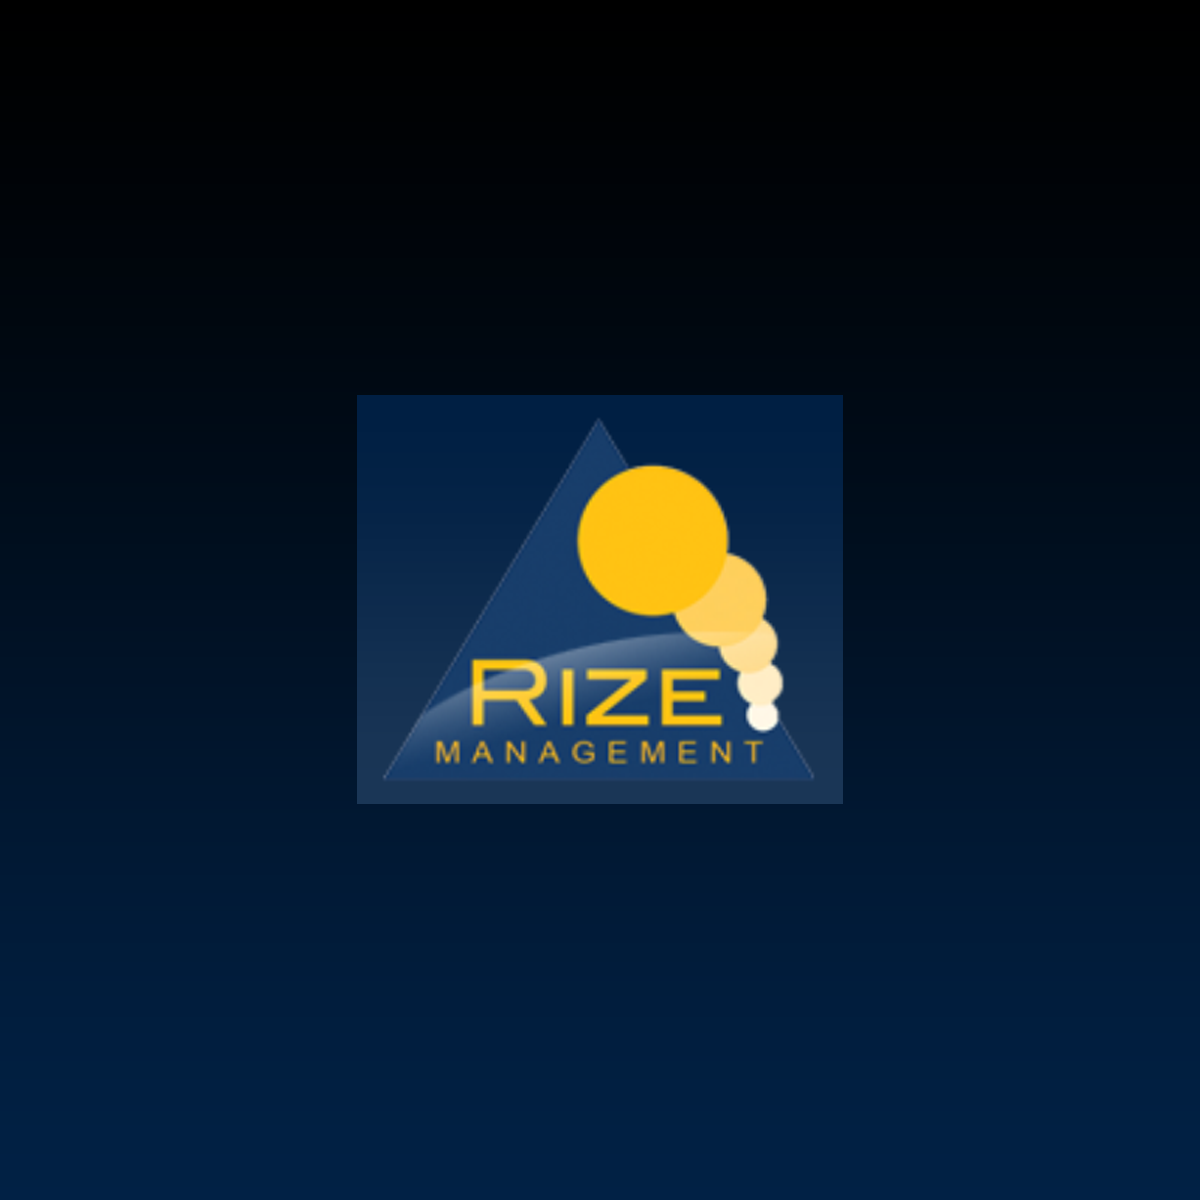 RIZE Management